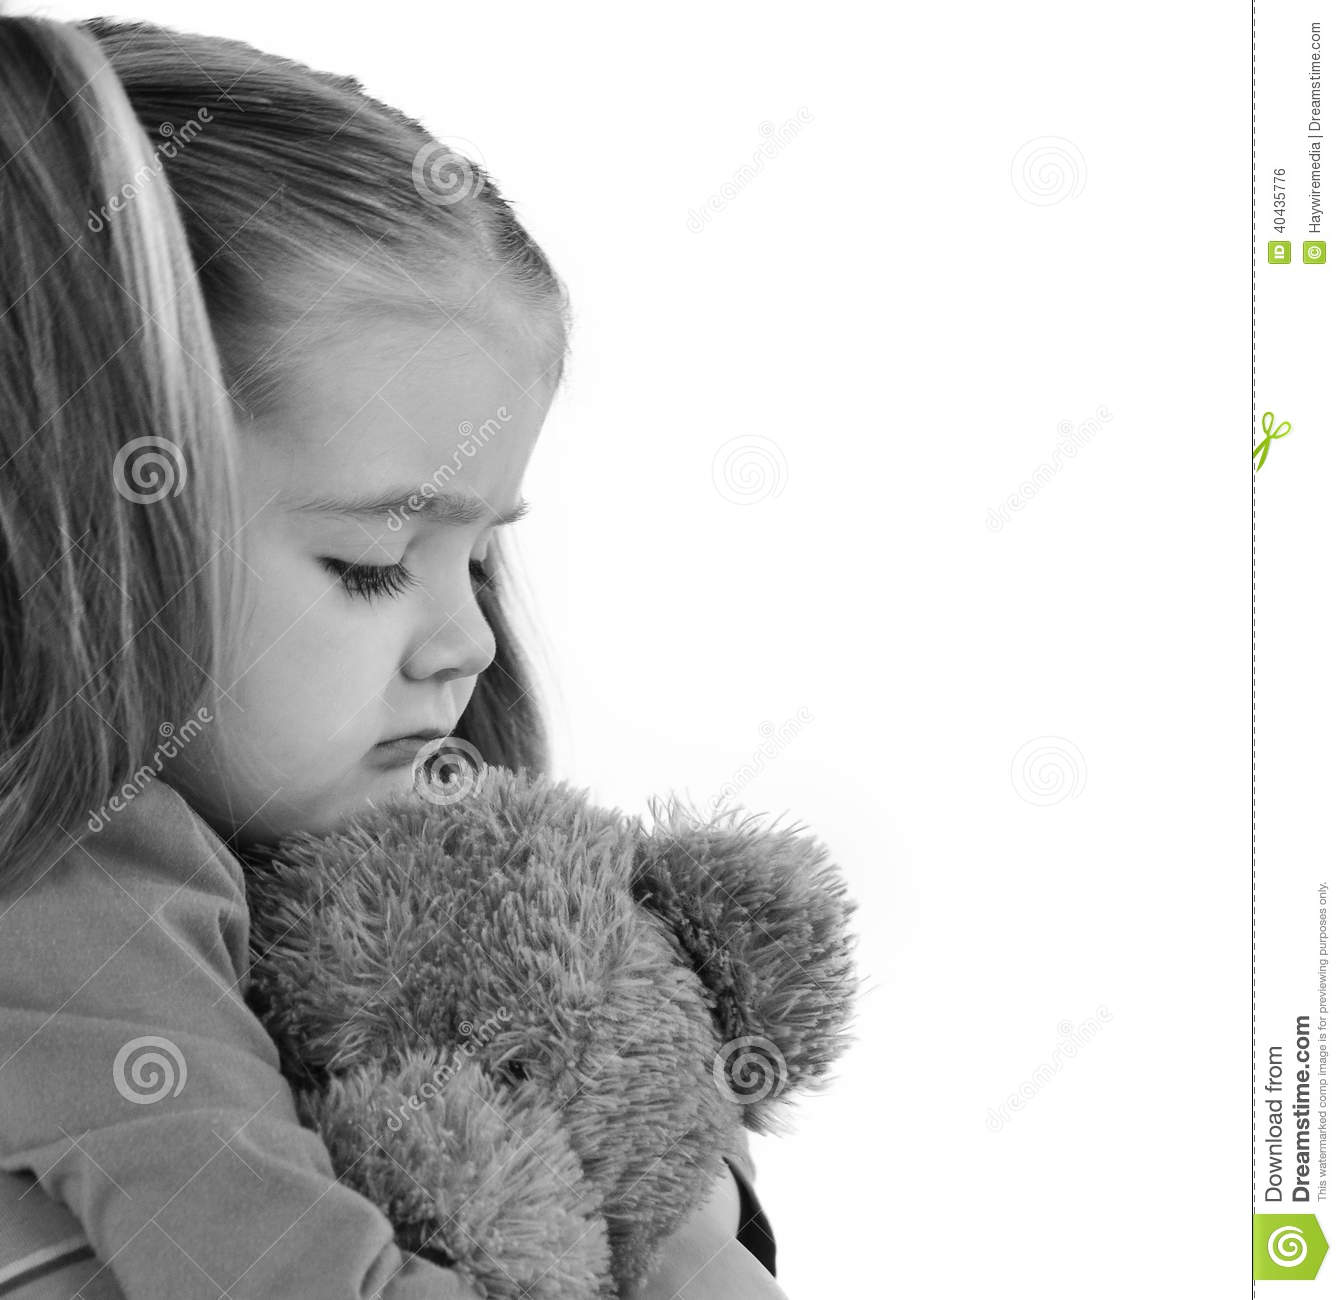 Sad Little Child Holding Teddy Bear Stock Photo - Image of ...Little Girl With Teddy Bear Black And White